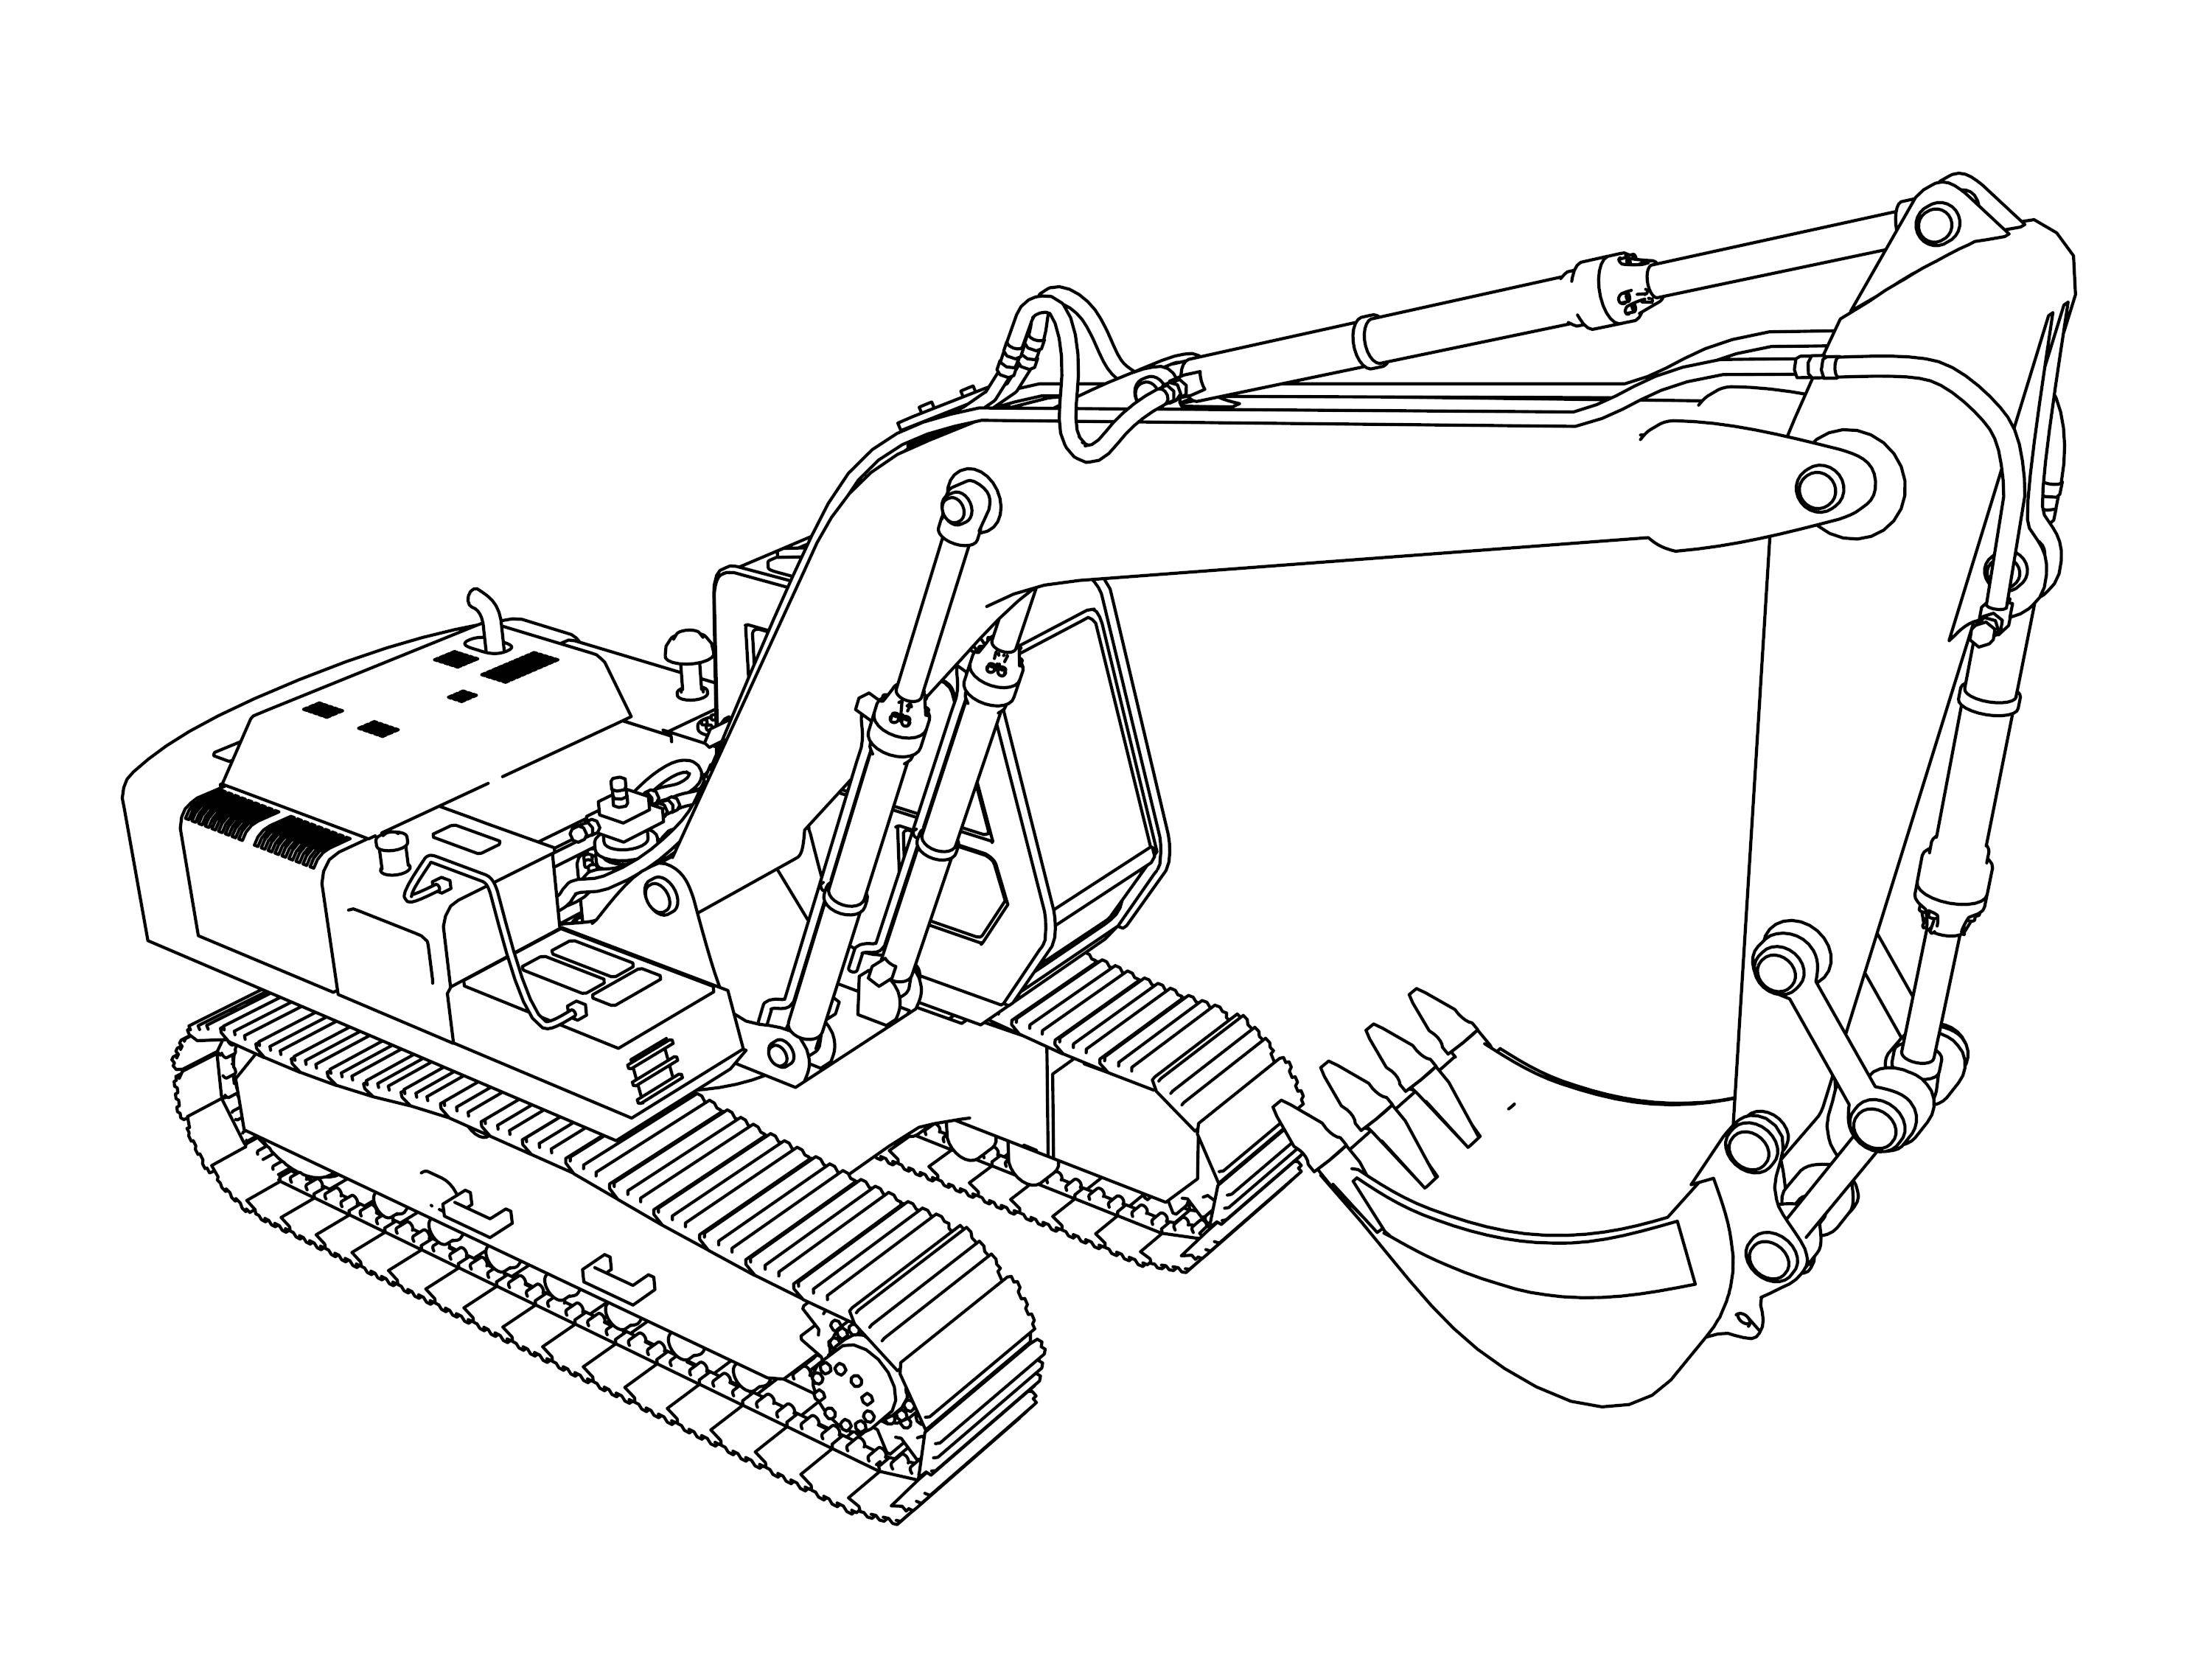 Coloring pages 4 wheeler - Excavator Coloring Pages